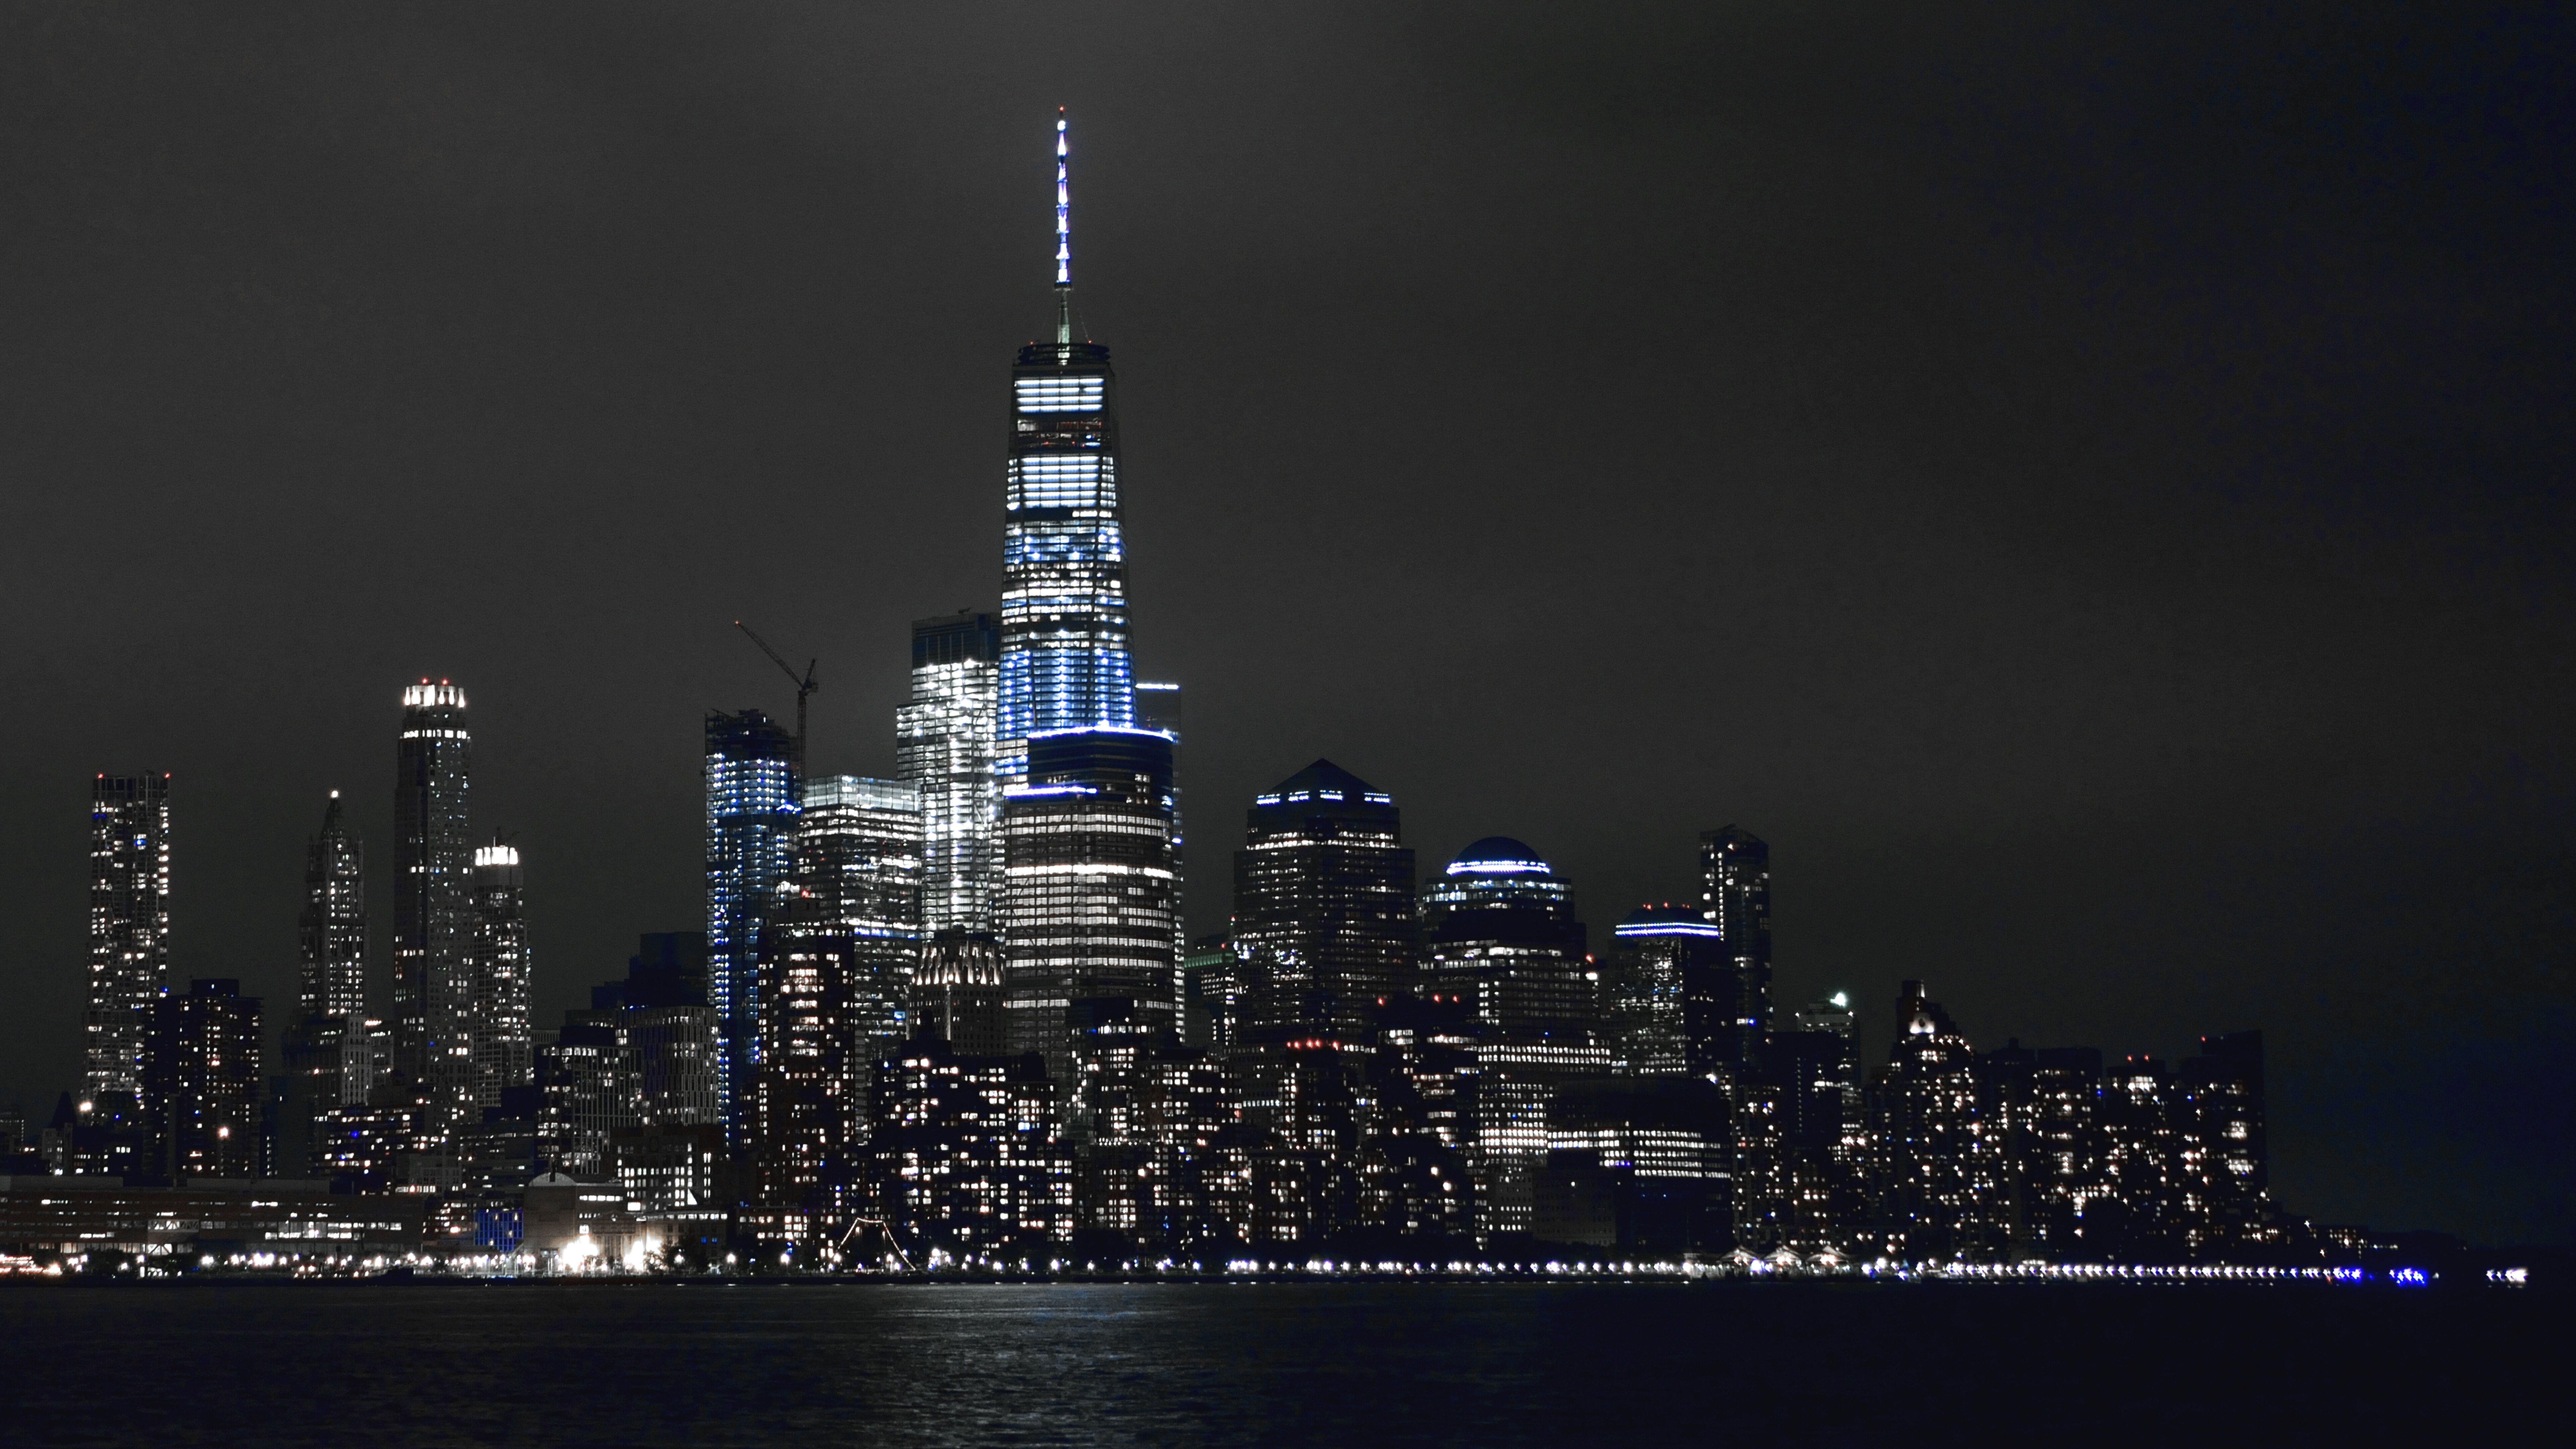 7680x4320 New York Buildings Lights 5k 8k Hd 4k Wallpapers Images Backgrounds Photos And Pictures